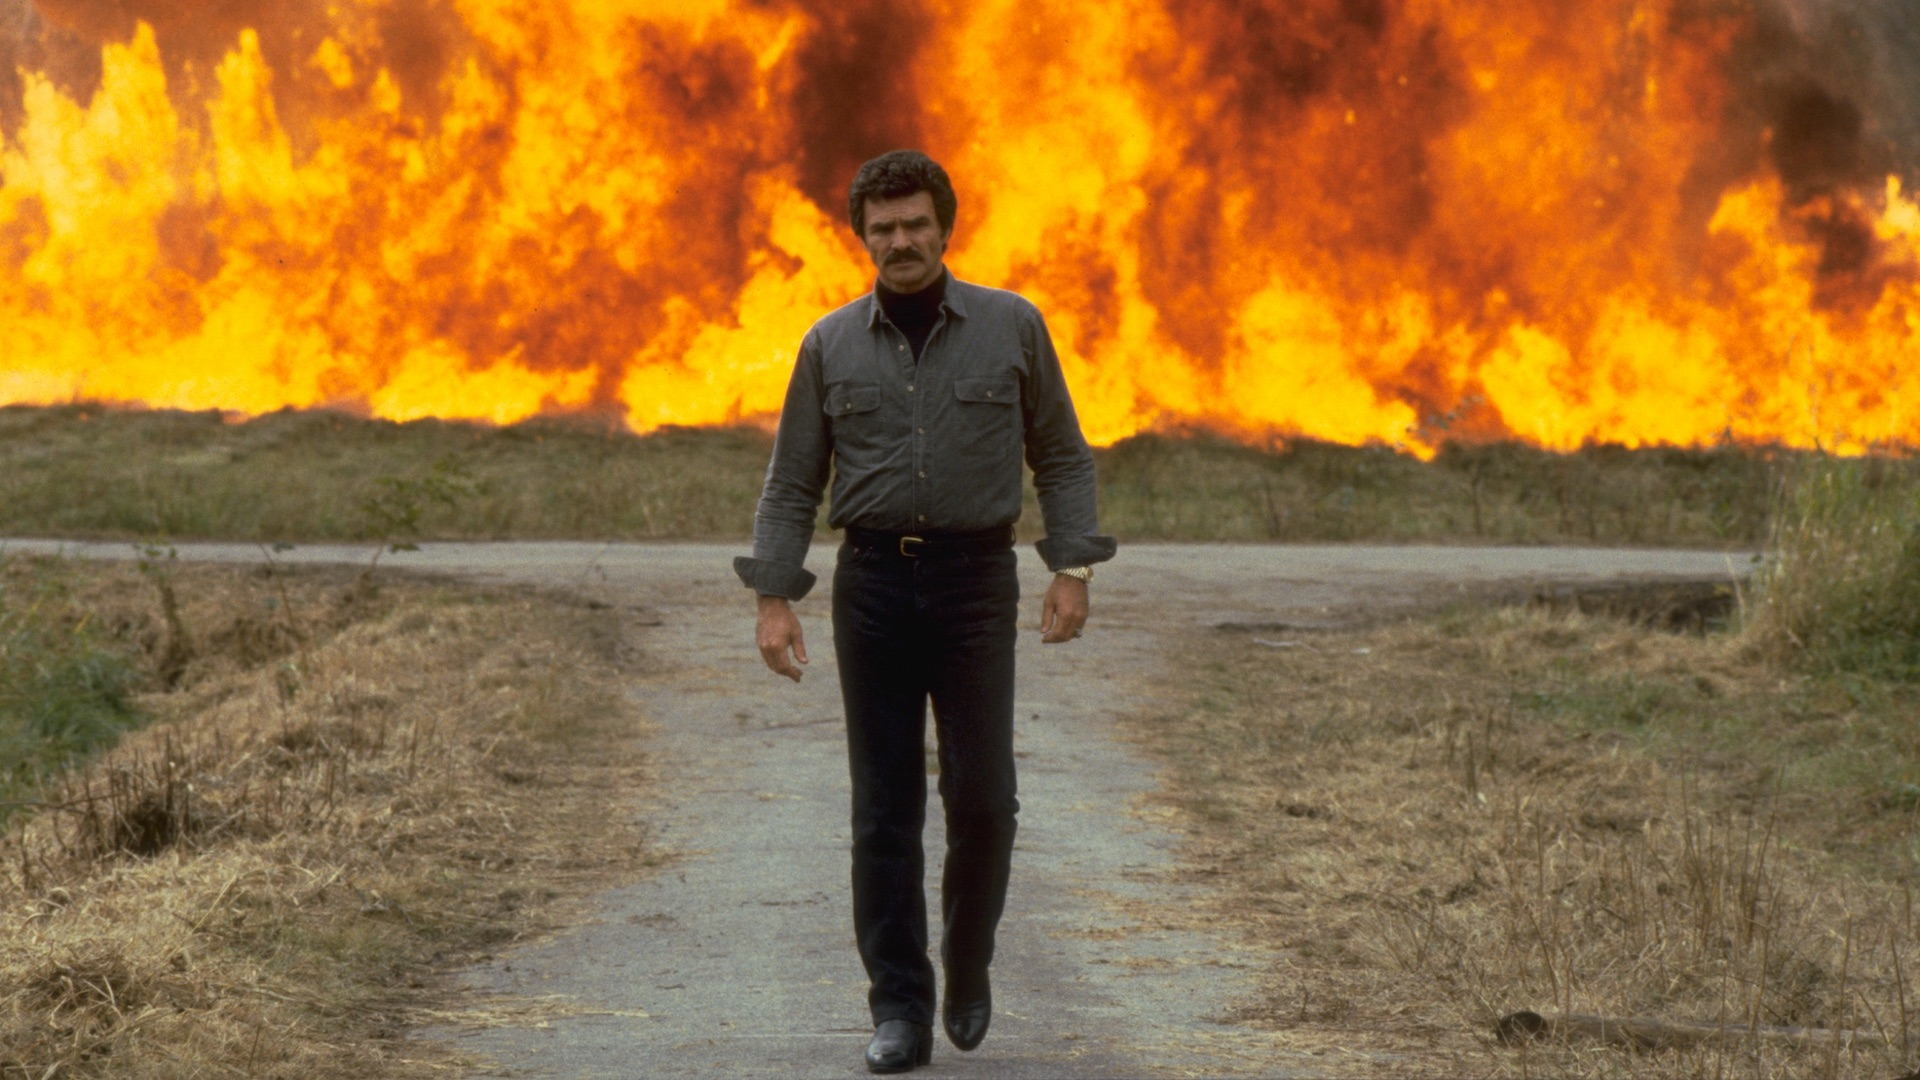 The Legend of Burt: A Look at Some of Burt Reynolds' Most Memorable Moments